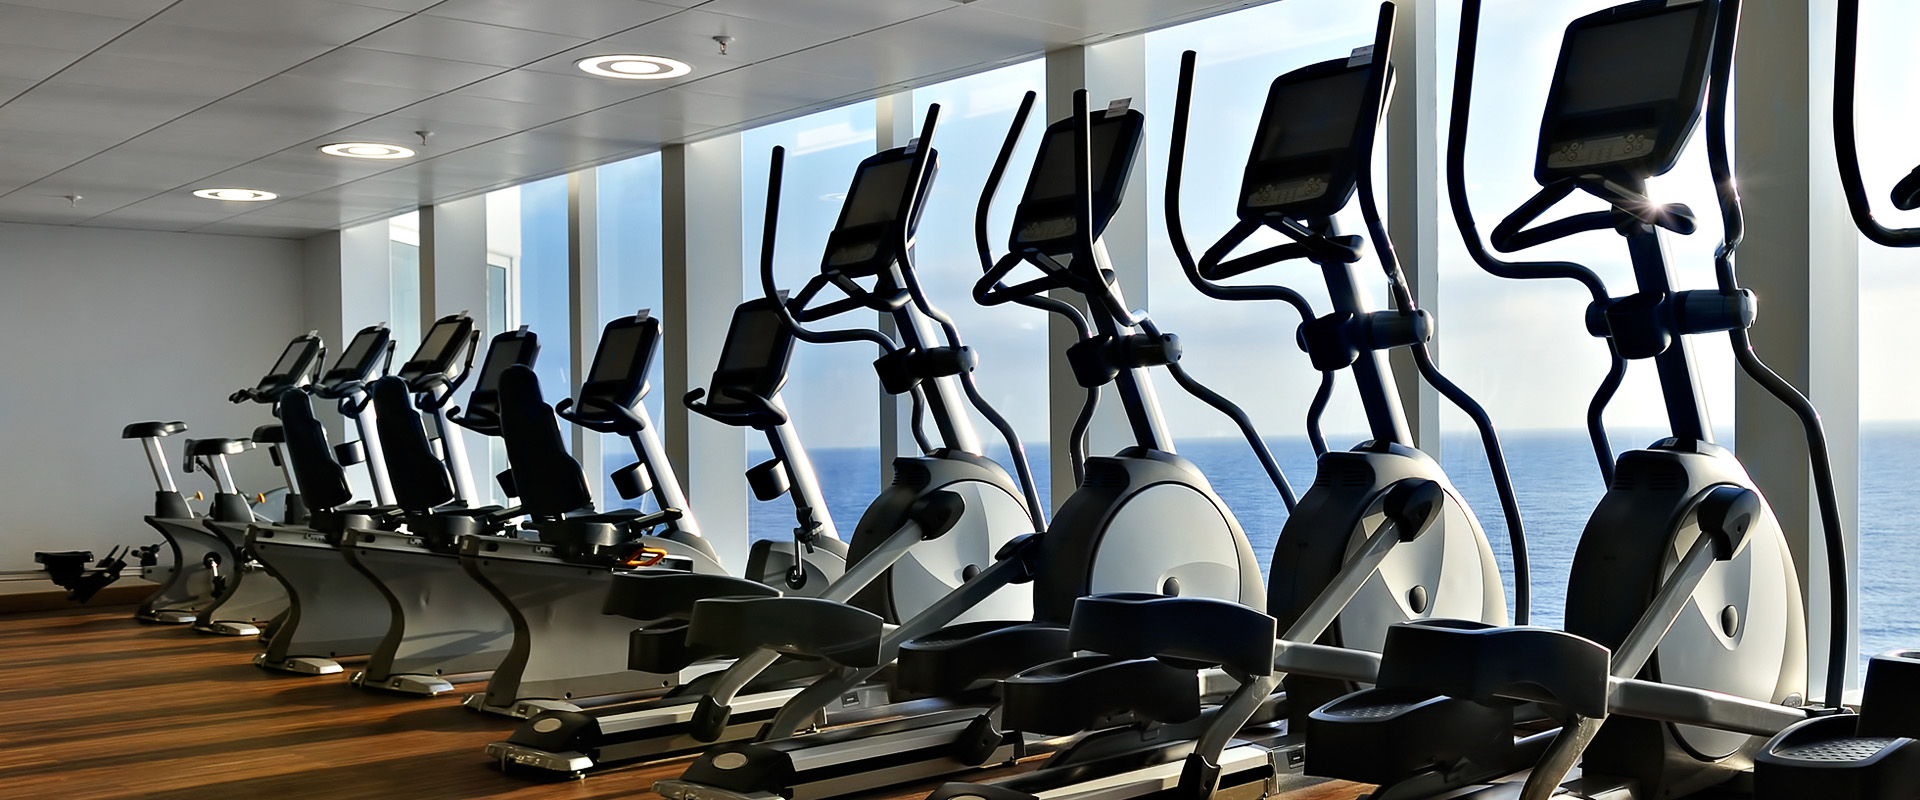 Fitness Treadmill Machine Can Do More Than You Think